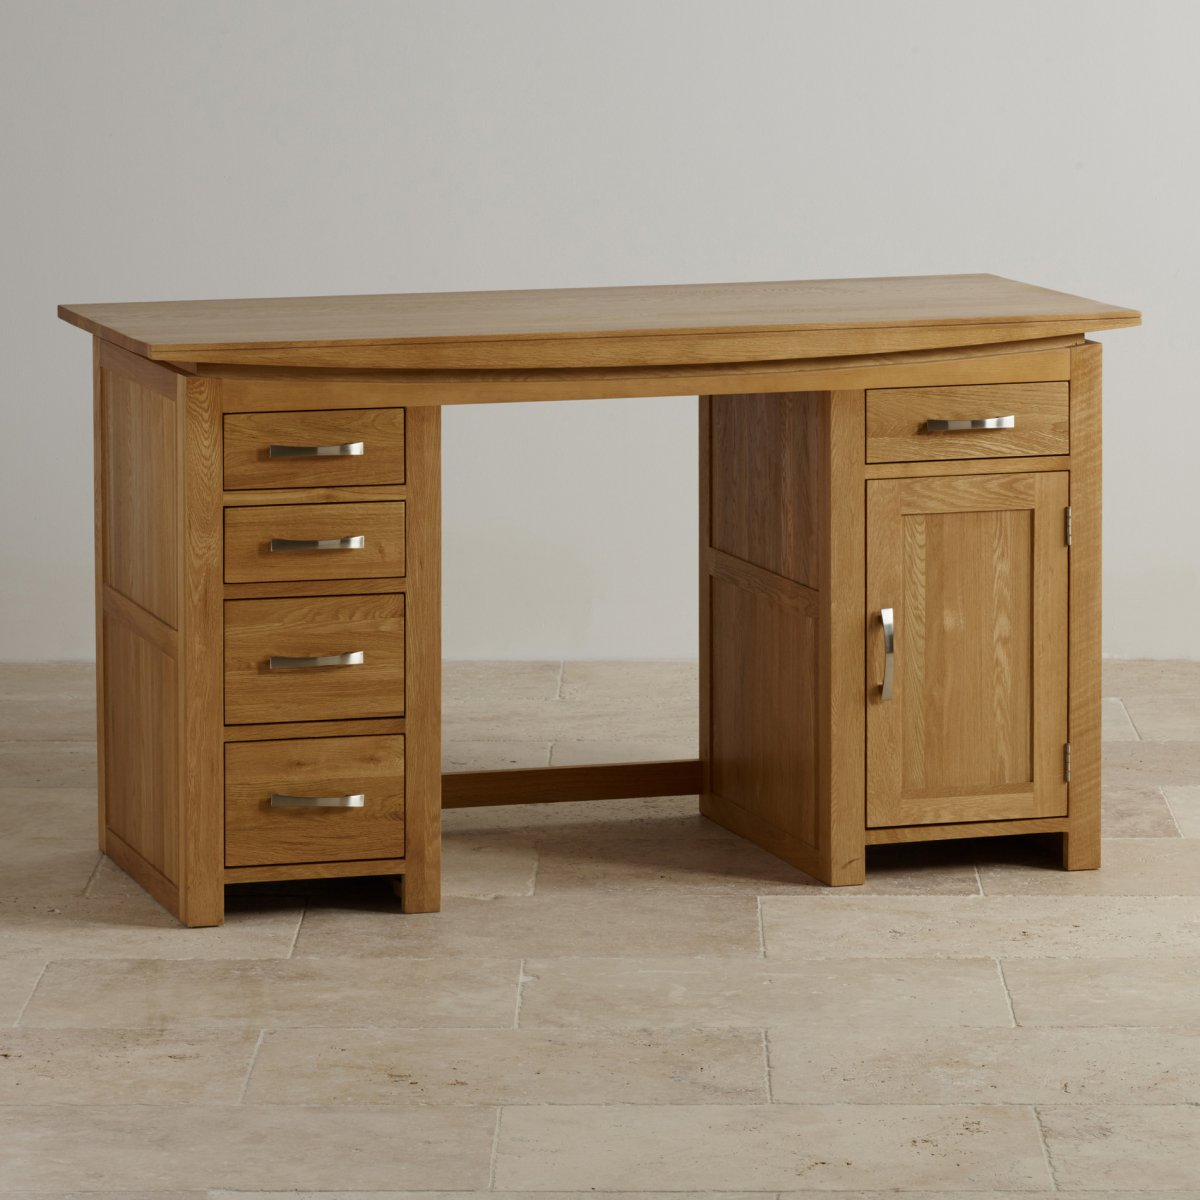 Tokyo natural solid oak computer desk by oak furniture land for Oak furniture land